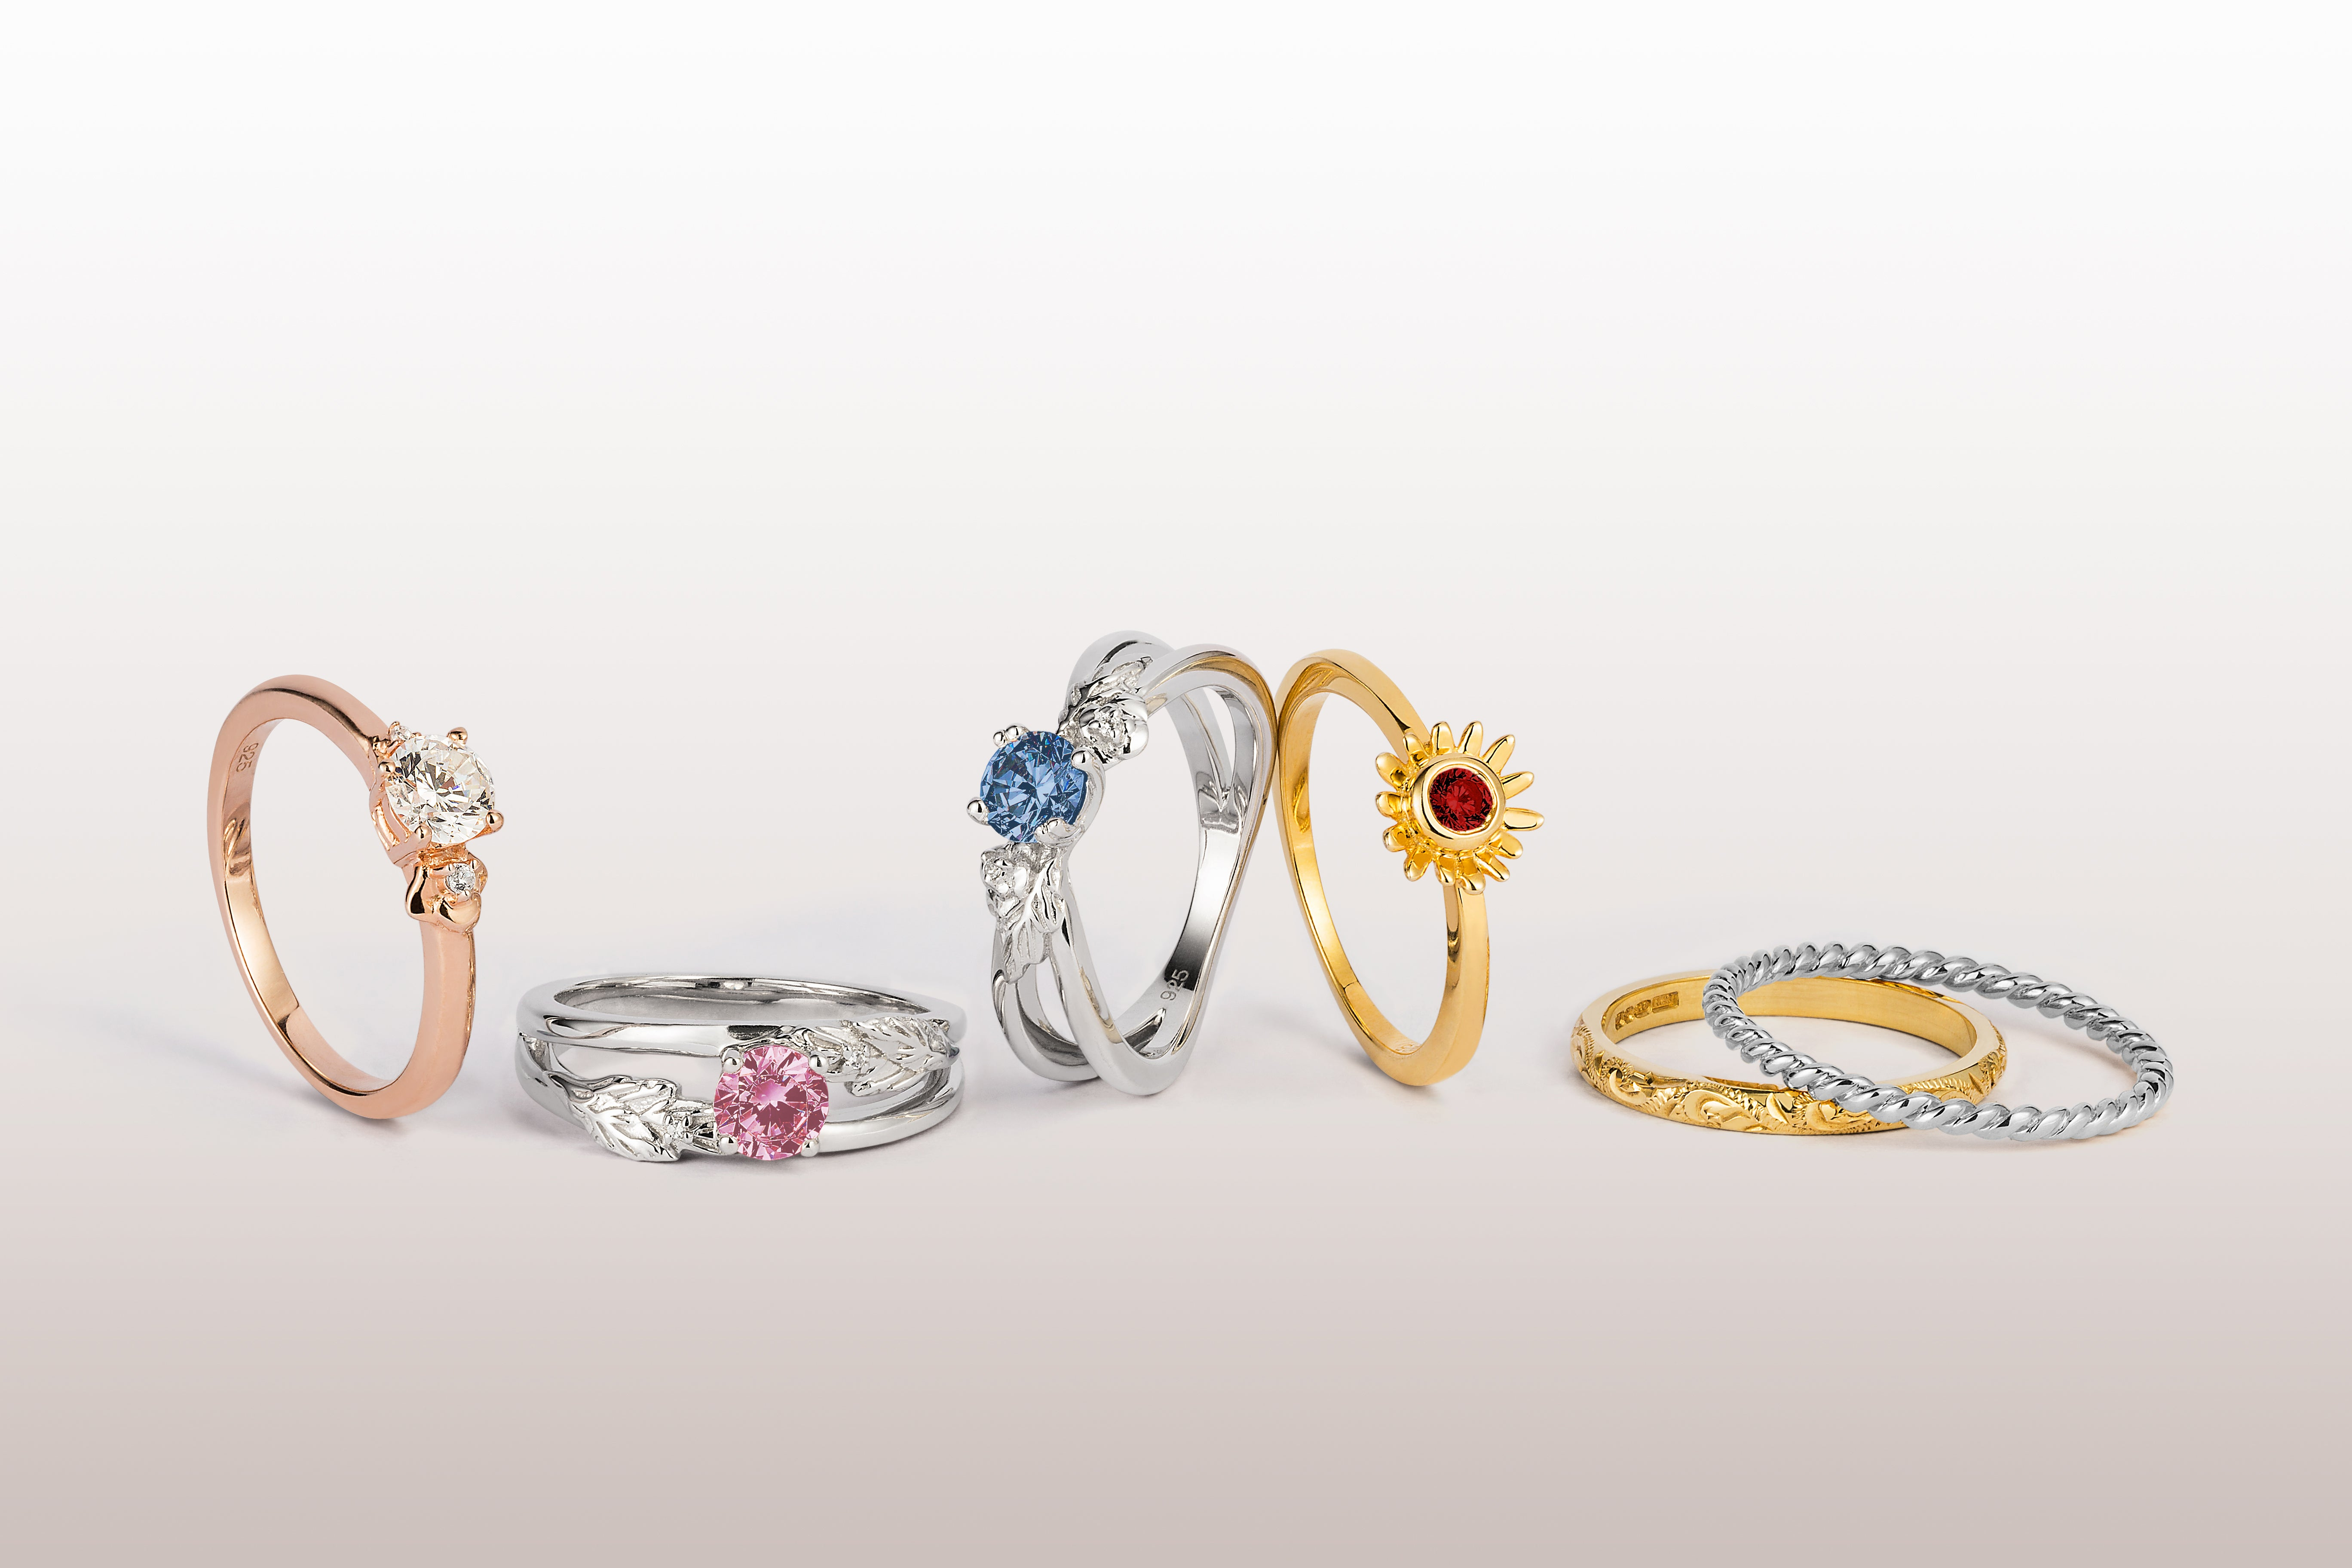 Arabel Lebrusan Ethical Engagement Rings